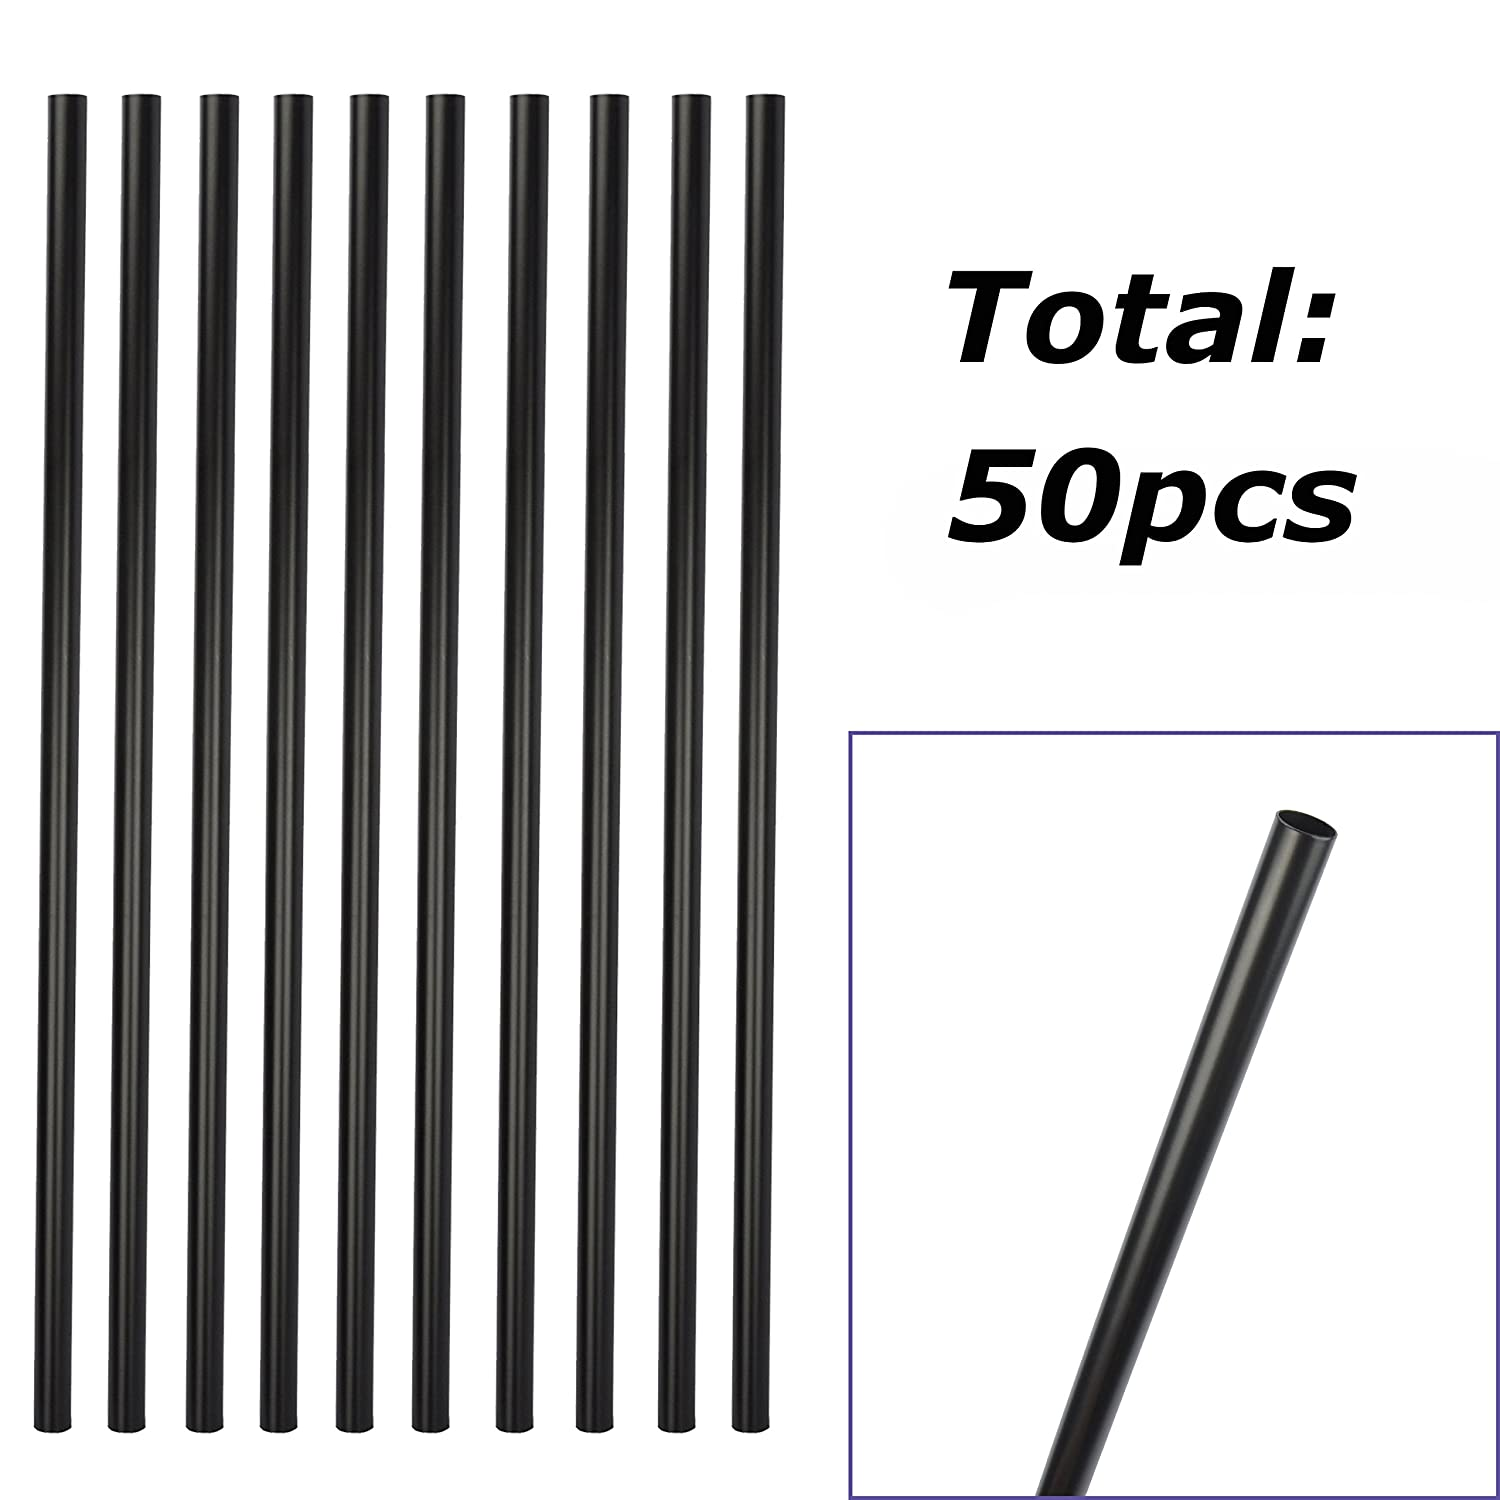 25-Pack, Matte Black Modern Look Myard 32 Inches Estate Square Iron Balusters for Decking Railing Patio Fence